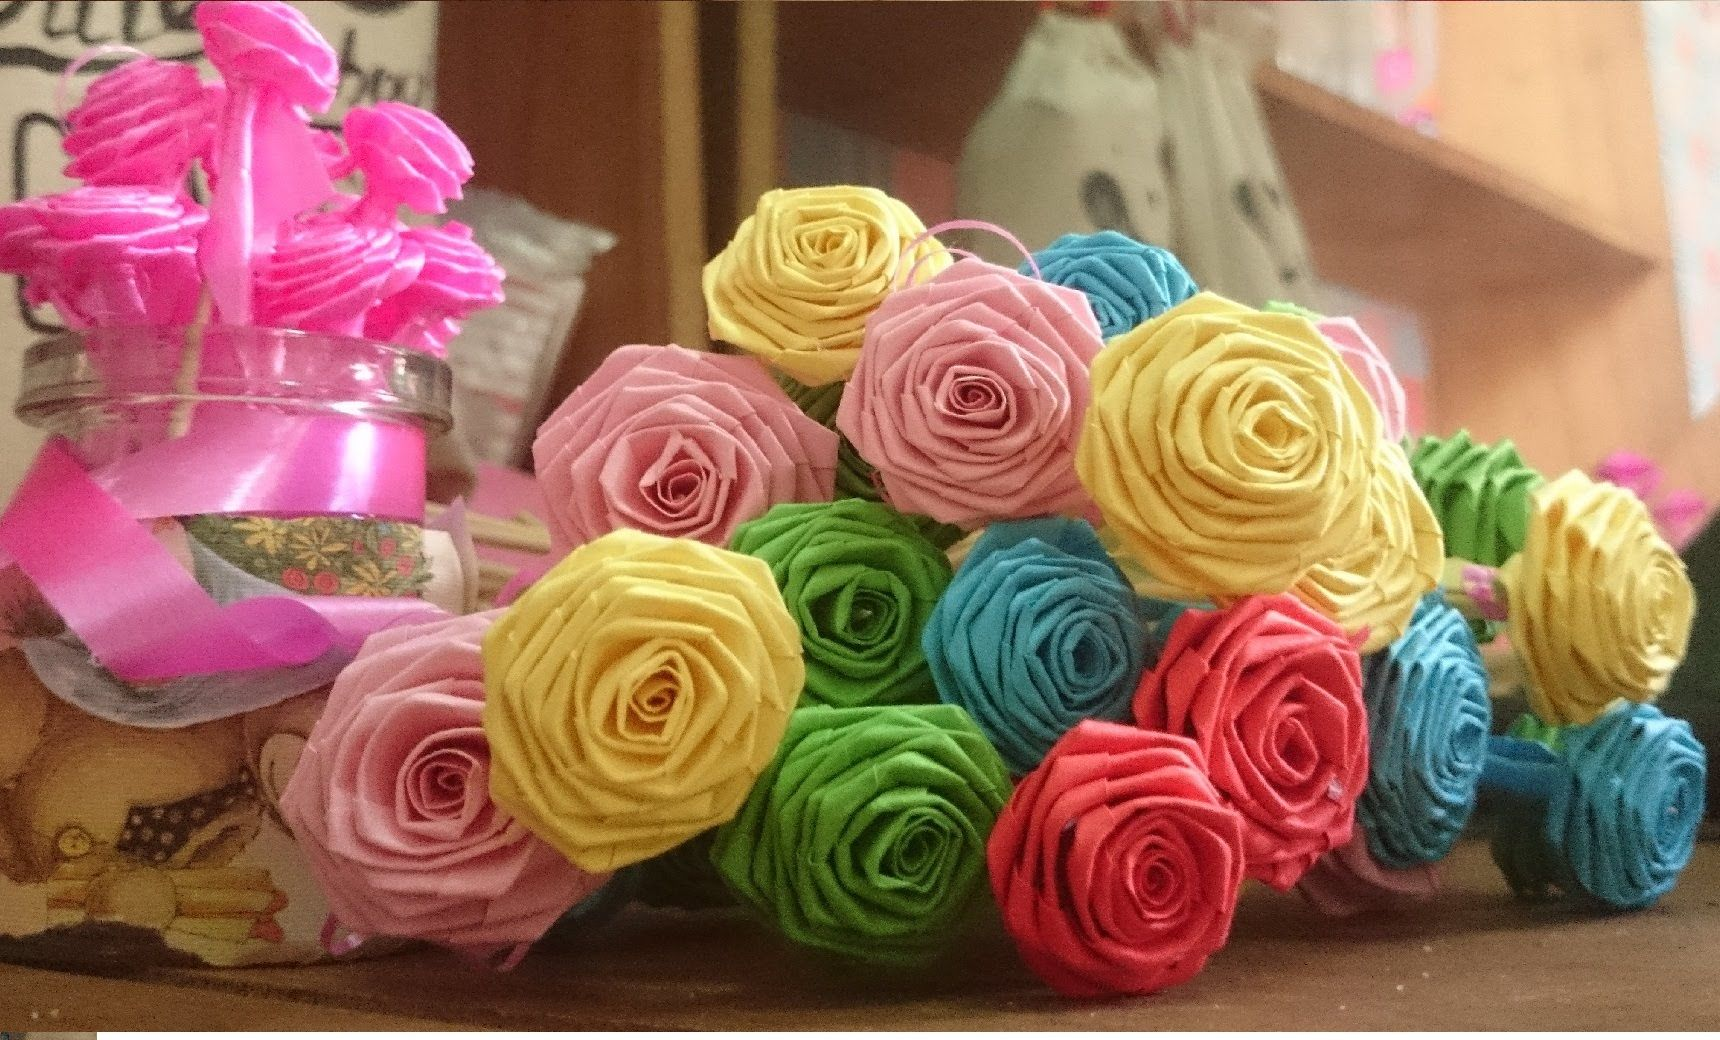 How To Make Handmade Paper Flower Super Easy Way To Make A Real